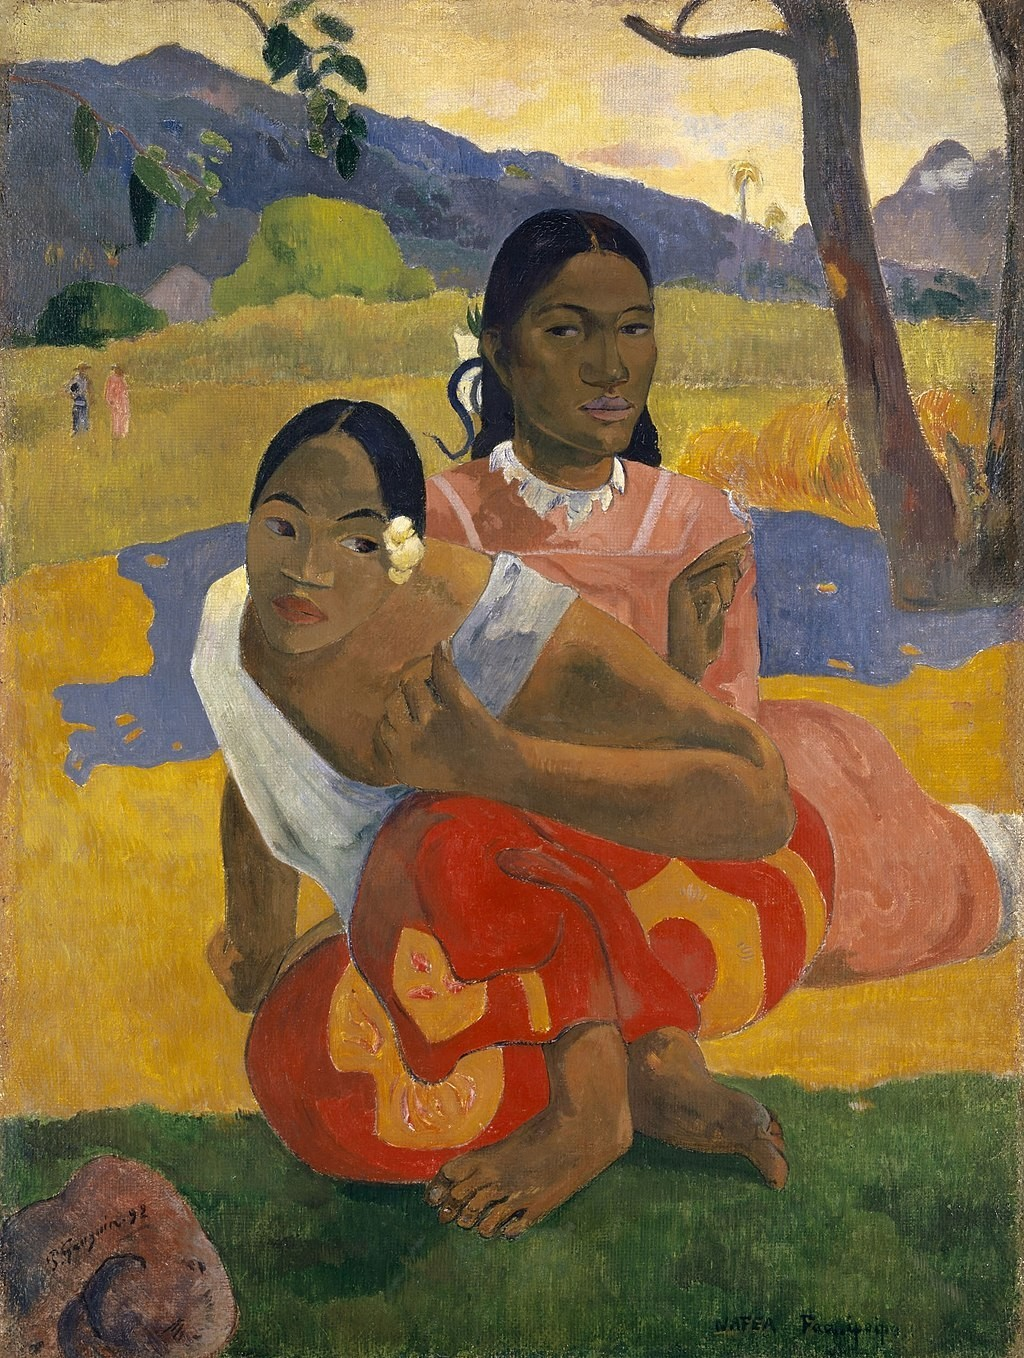 Gauguin painted Nafea Fan Ipoipo on his first visit to Tahiti in 1892